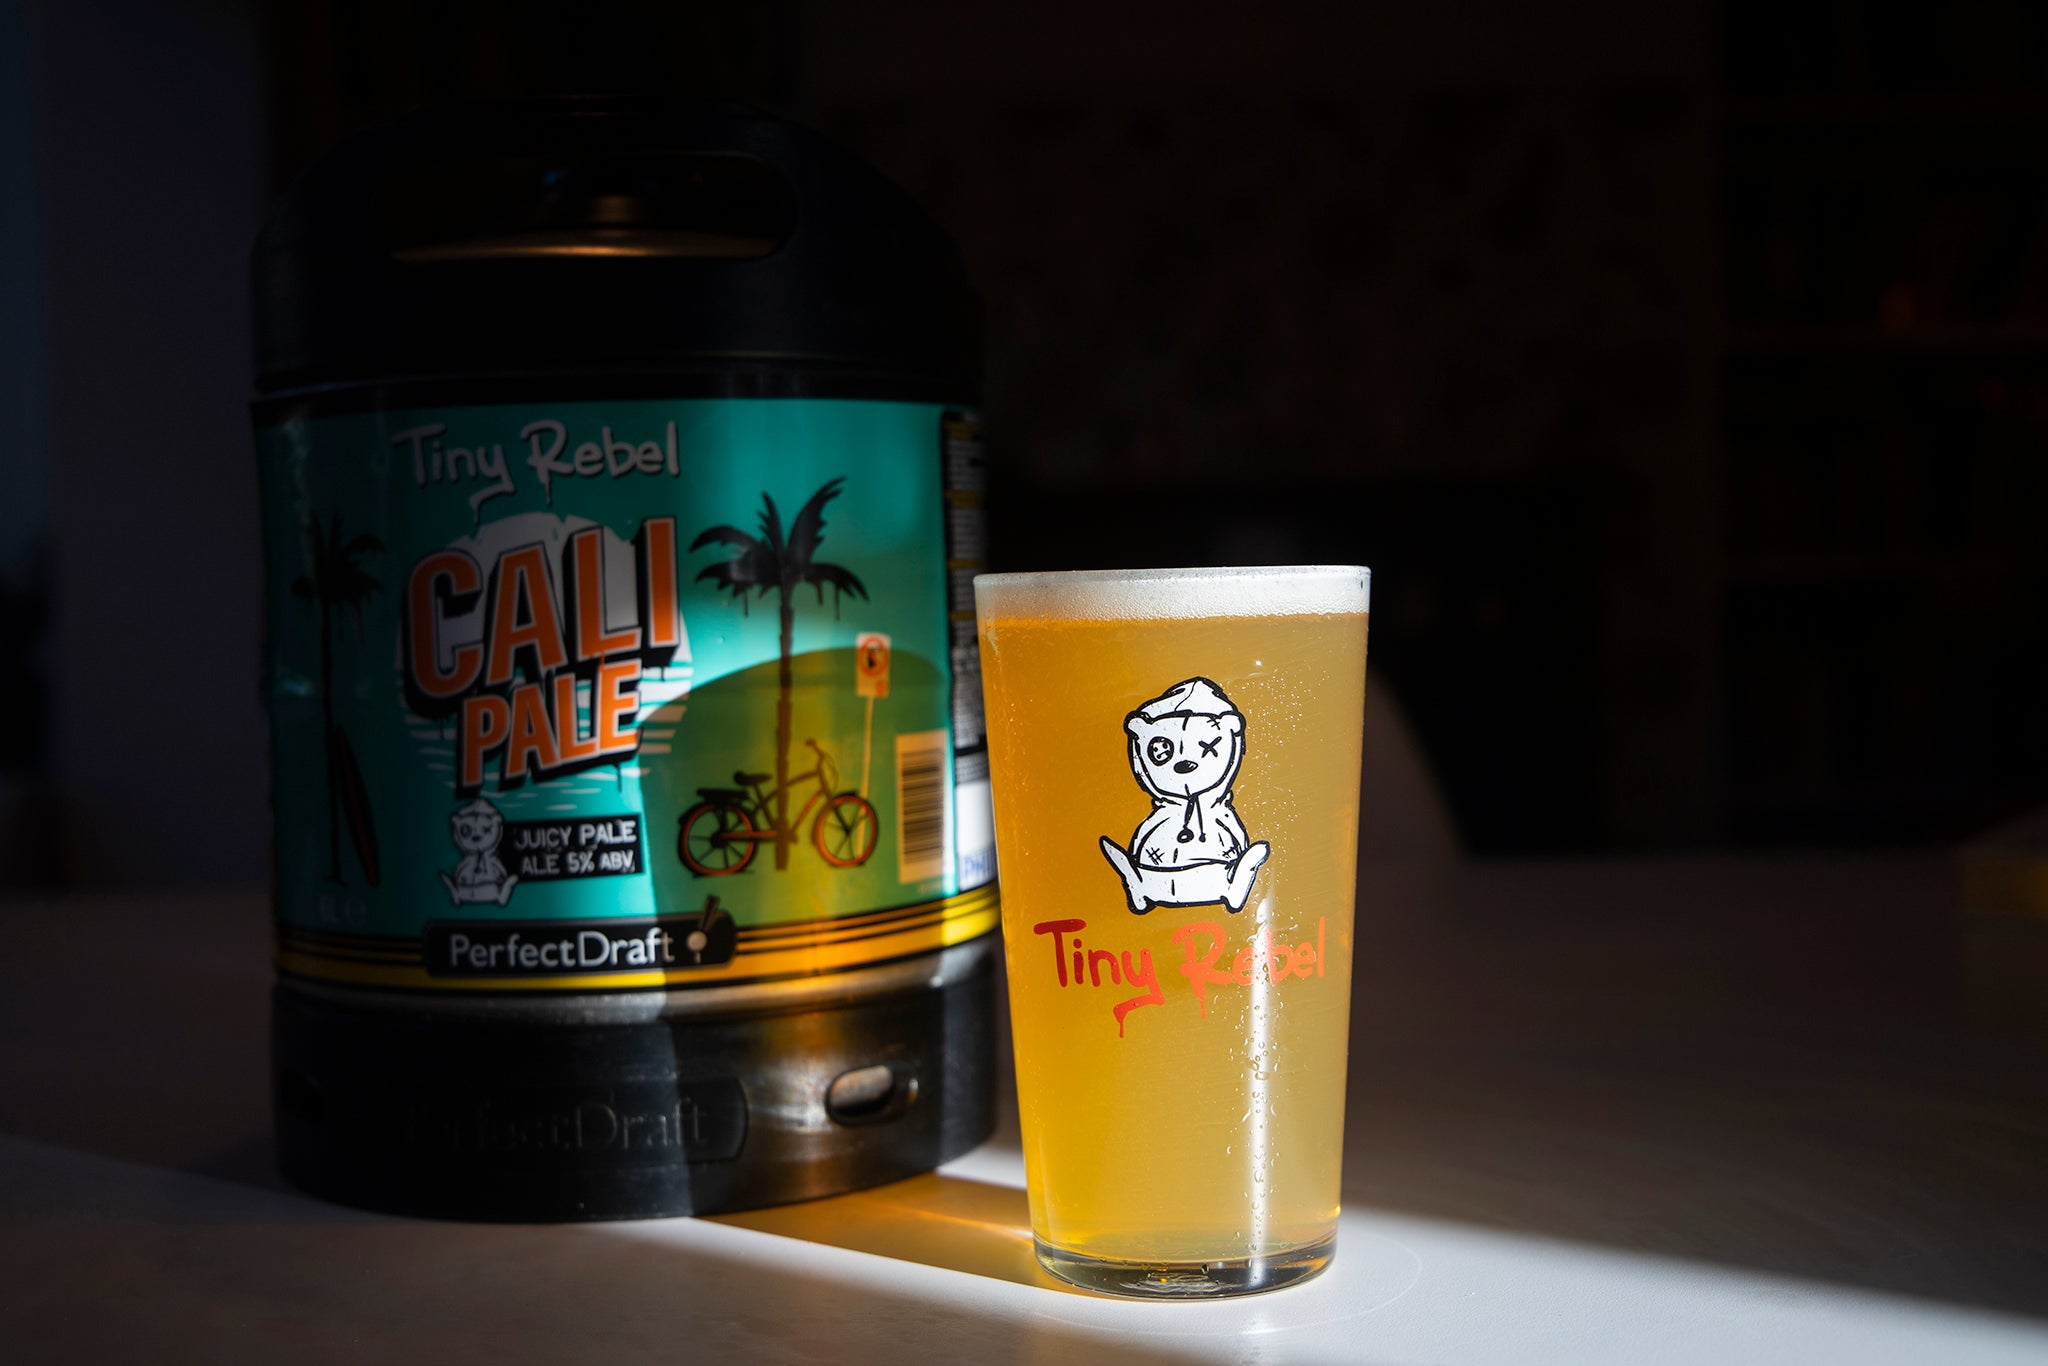 Tiny Rebel Cali Pale Ale now on PerfectDraft